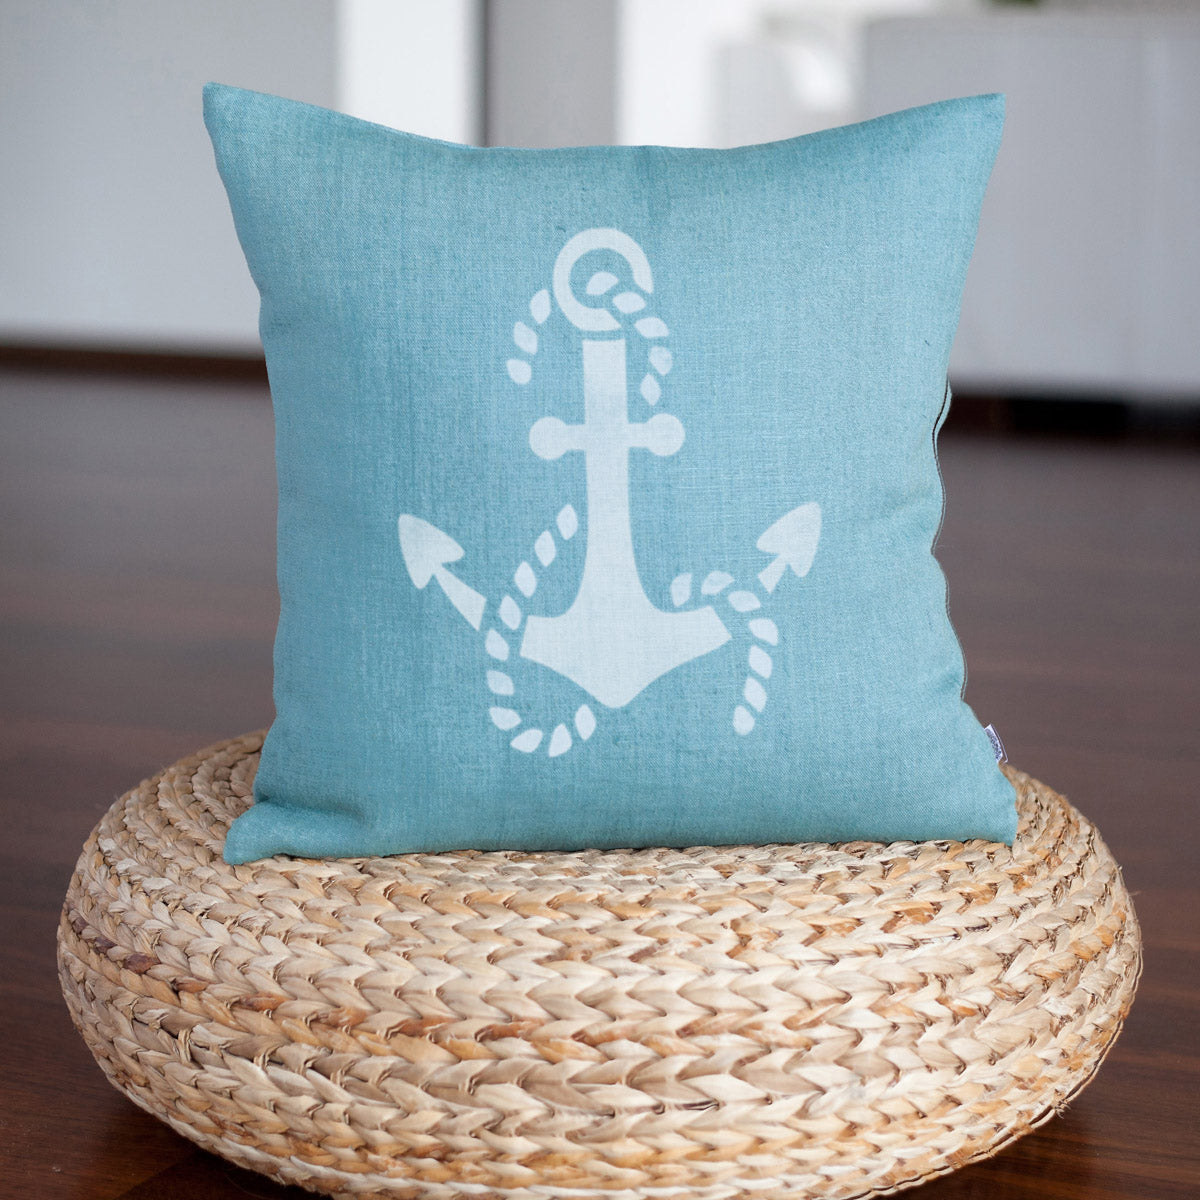 CraftStar Anchor Stencil on Cushion